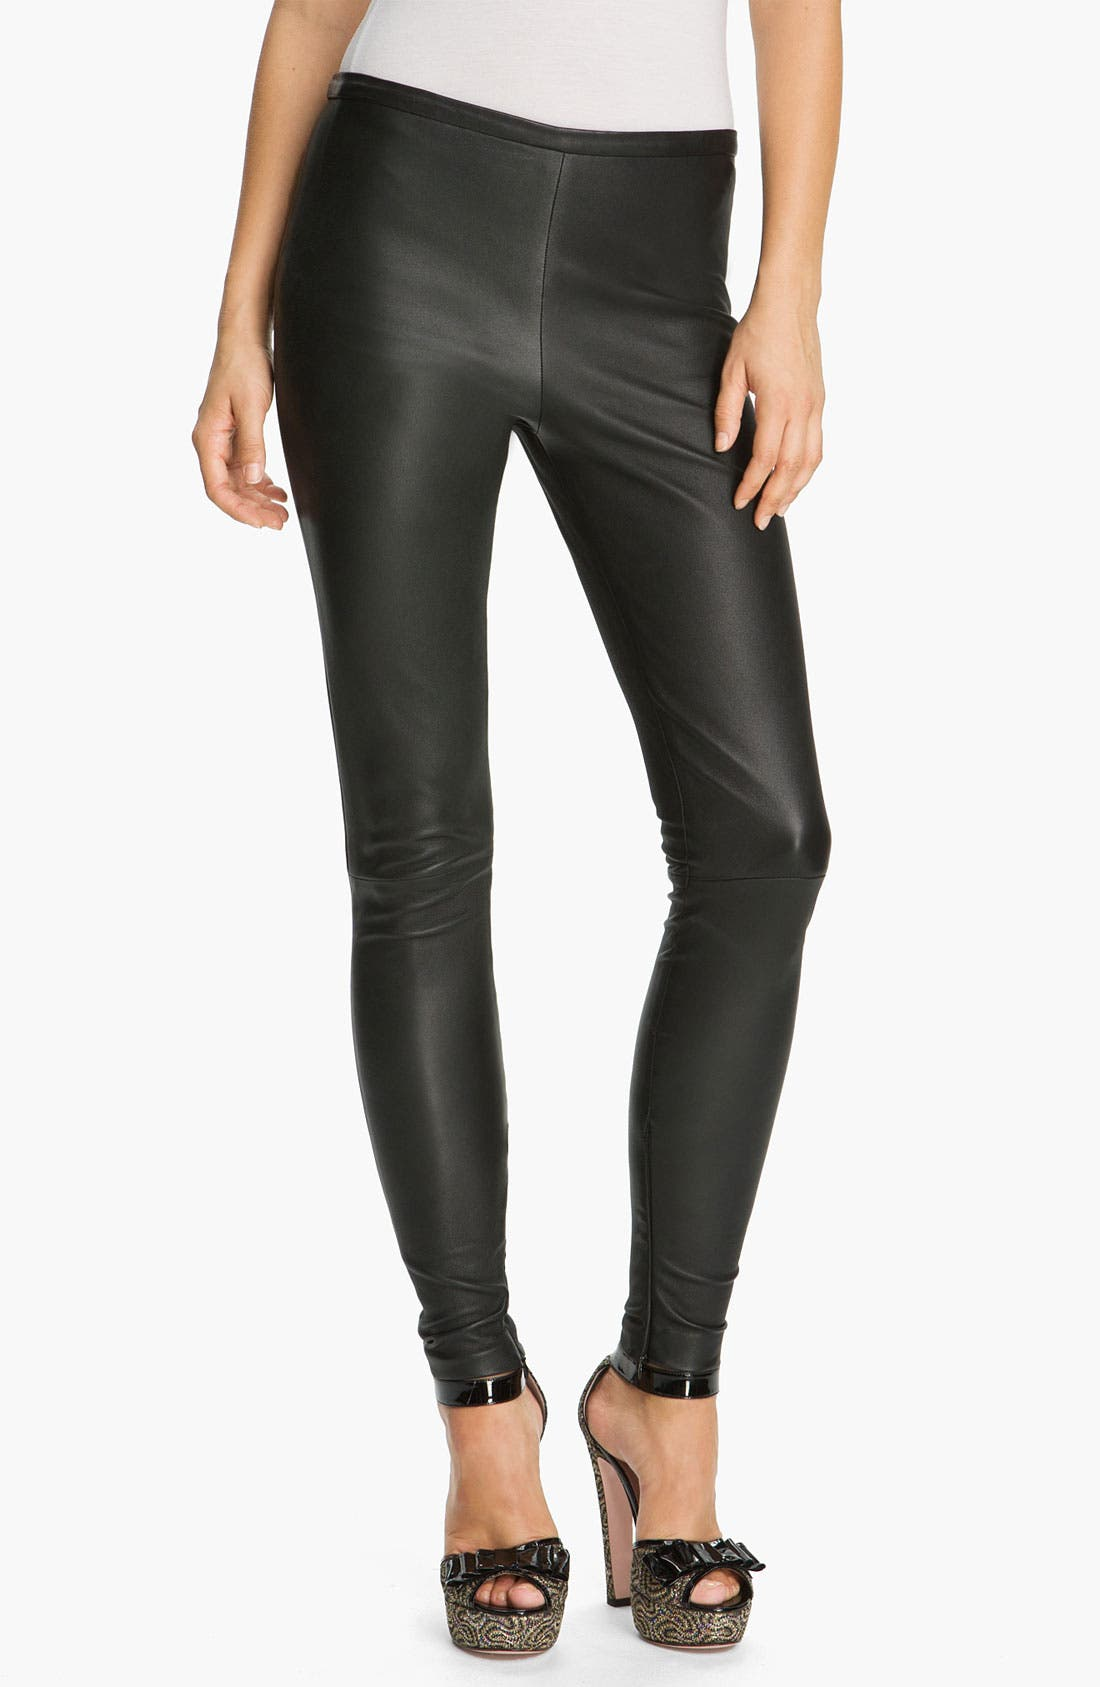 Alternate Image 1 Selected - RED Valentino Stretch Leather Leggings